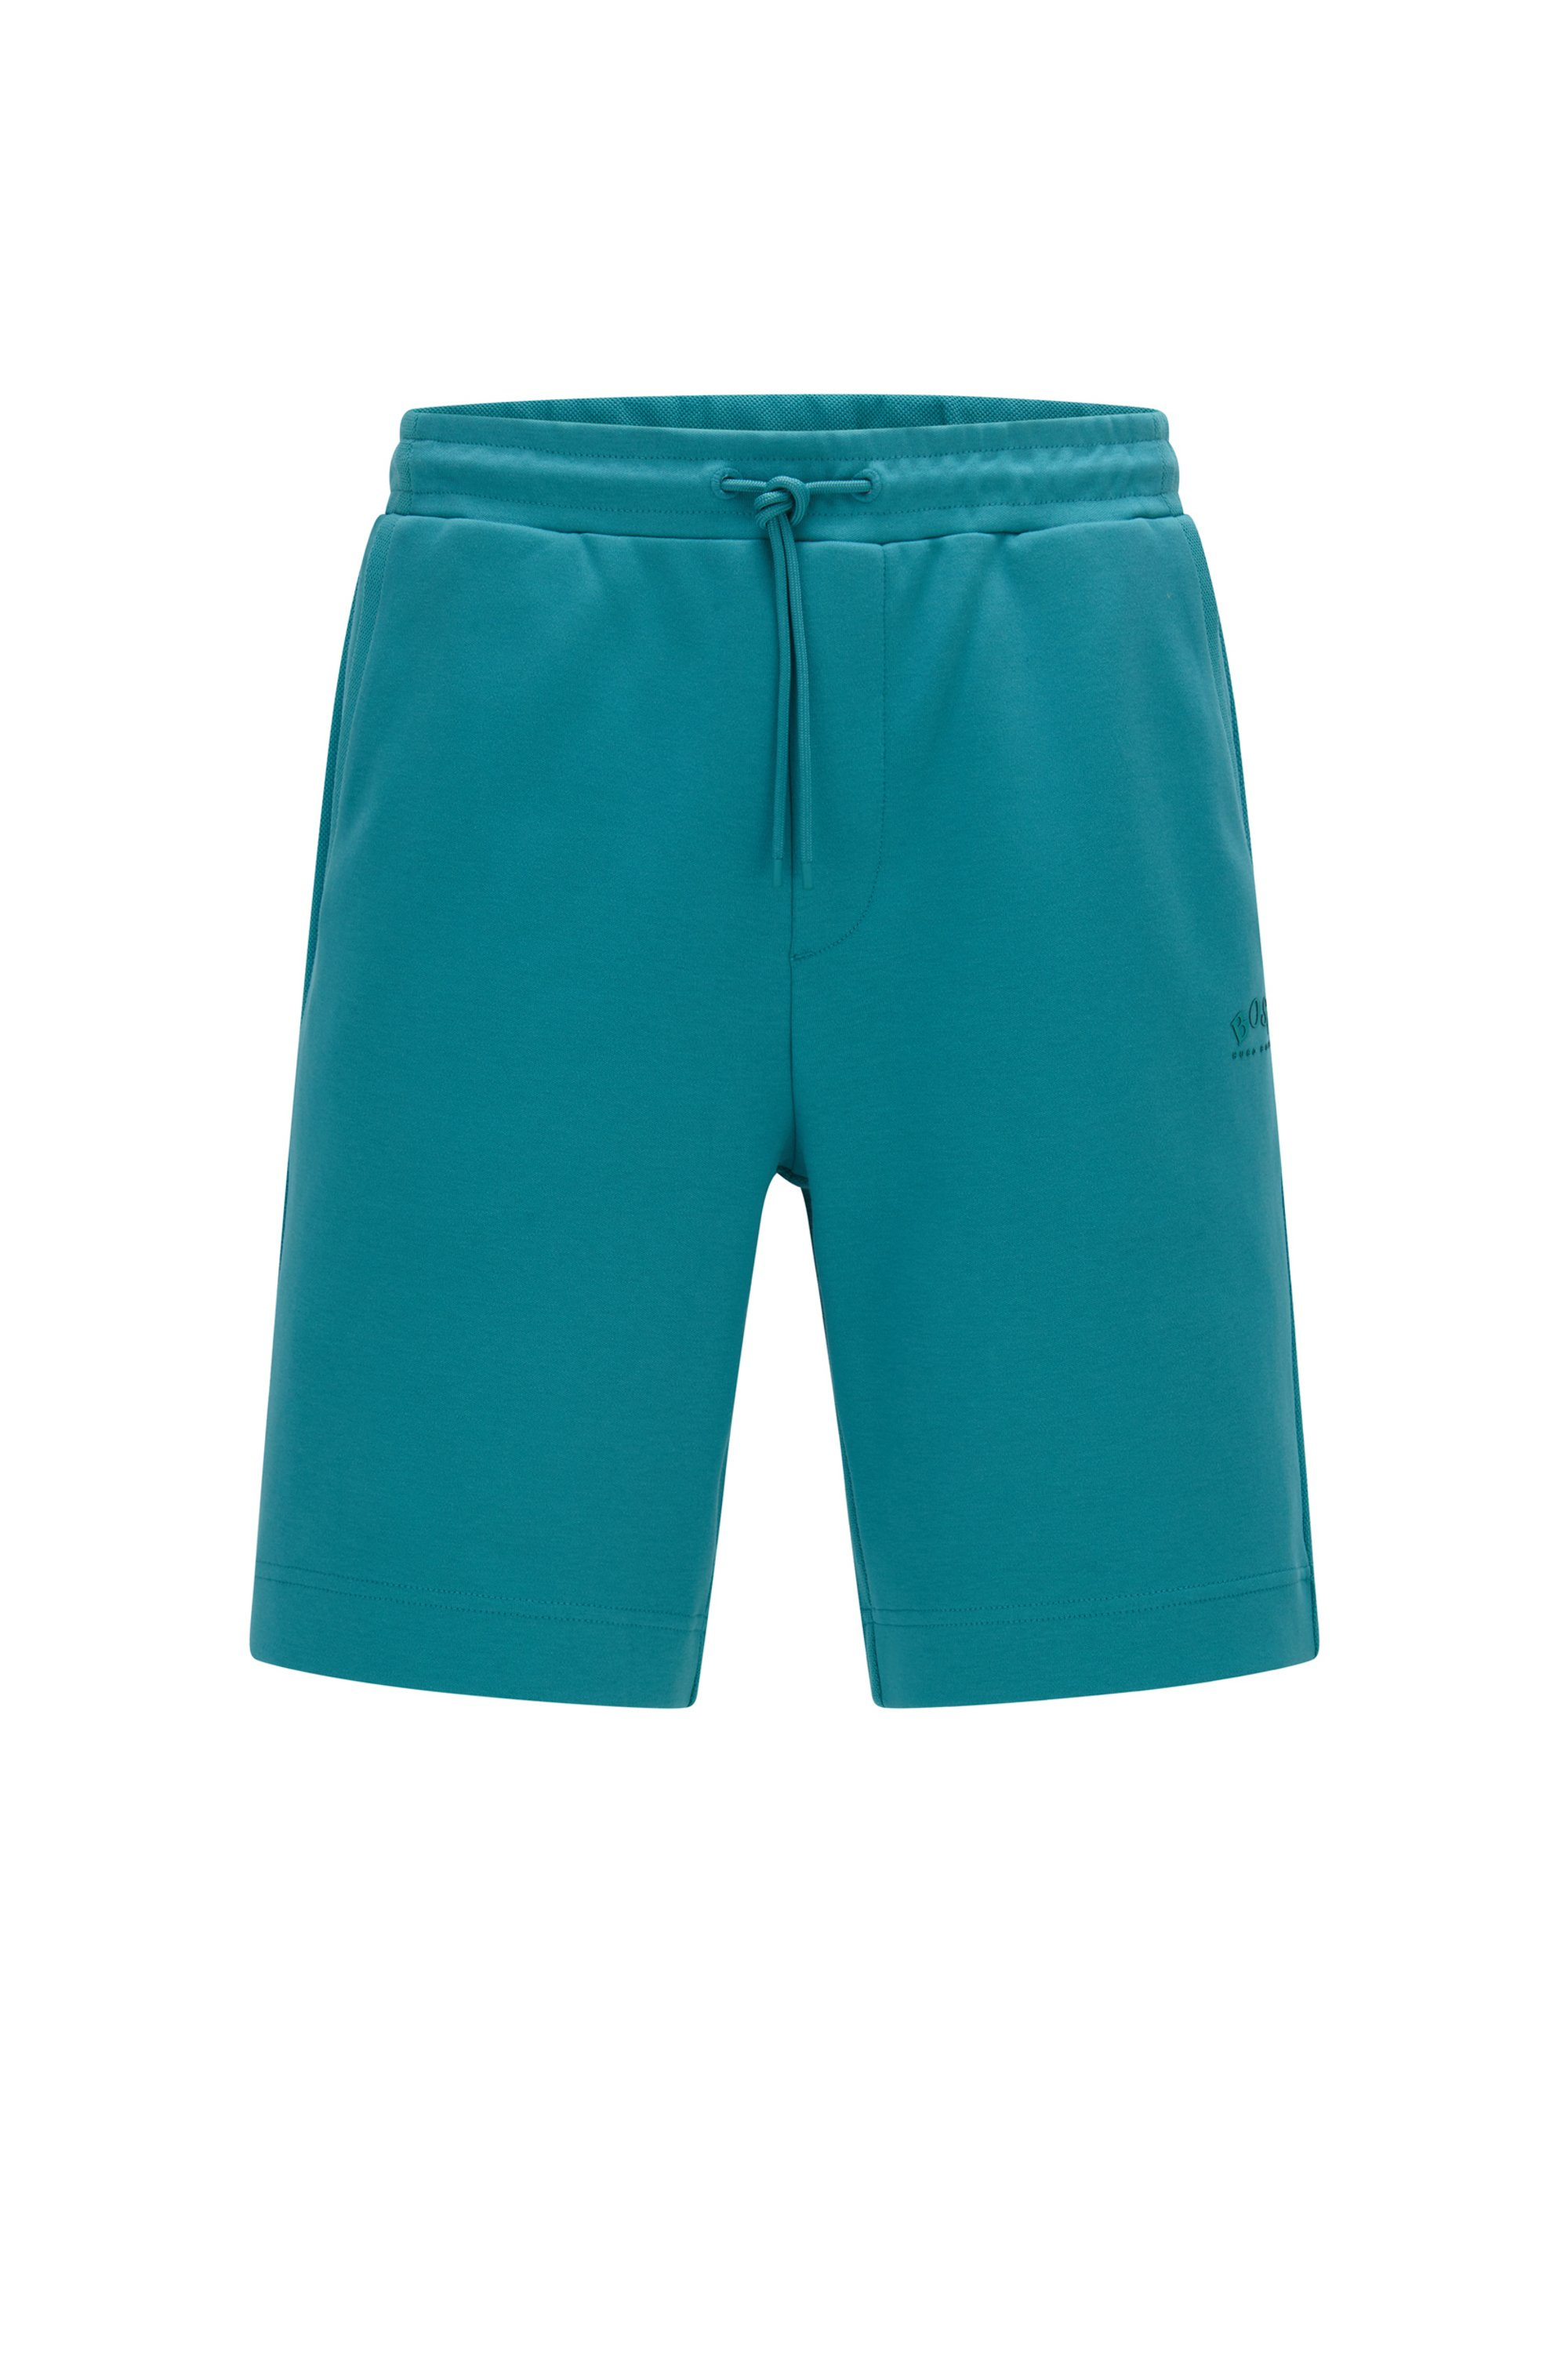 Drawstring shorts in cotton jersey with tonal piqué structure, Turquoise